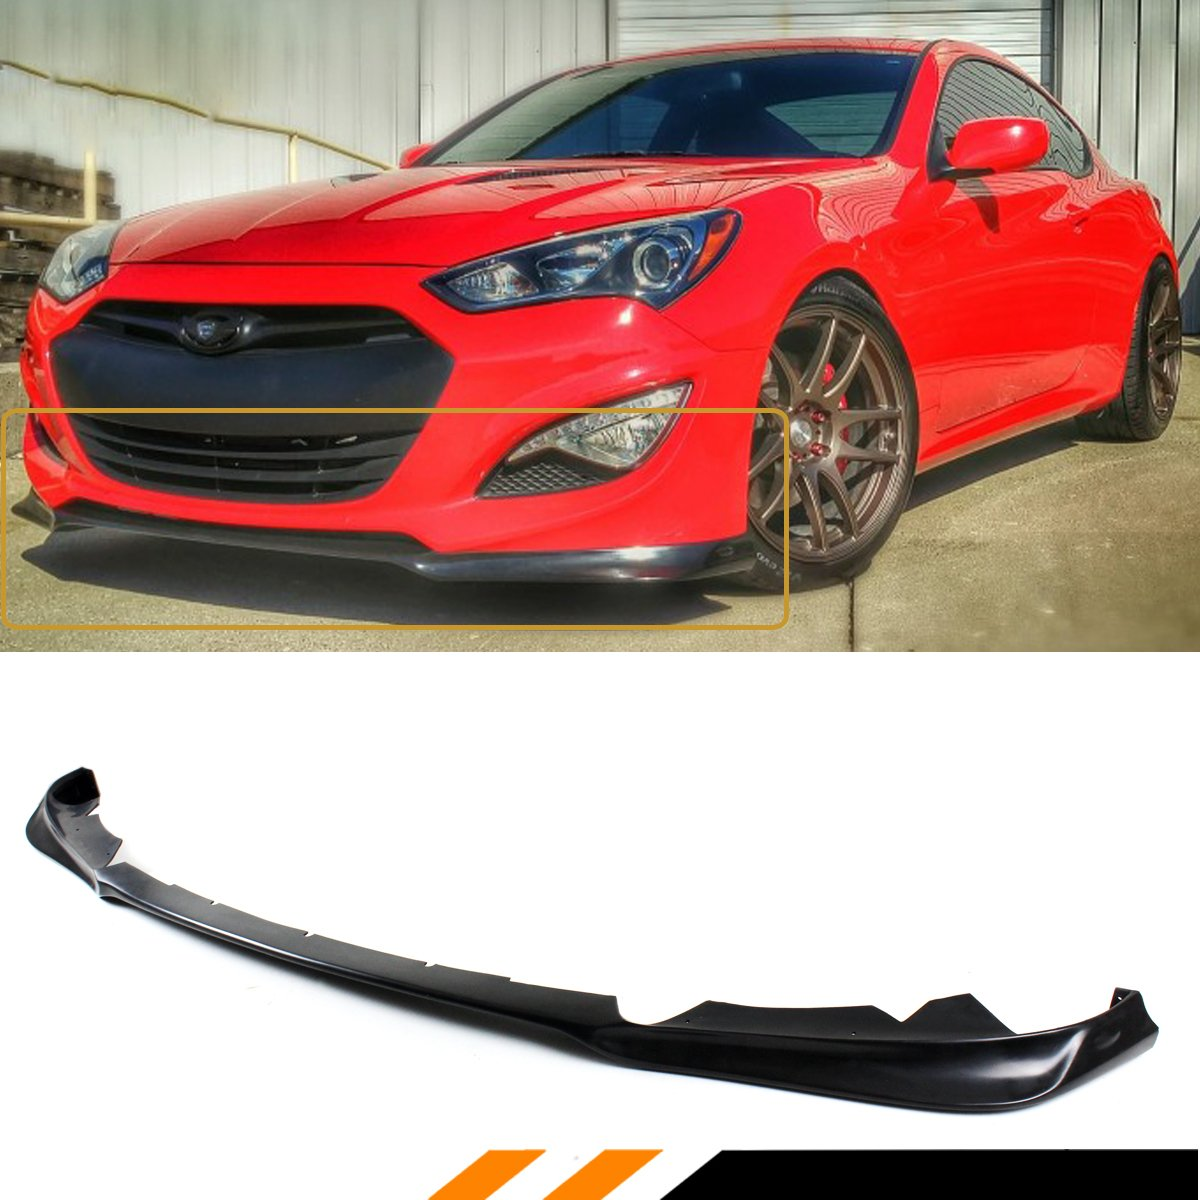 Genesis Coupe 2016 >> Amazon Com Fits For 2013 2016 Hyundai Genesis Coupe Kdm Ks Style